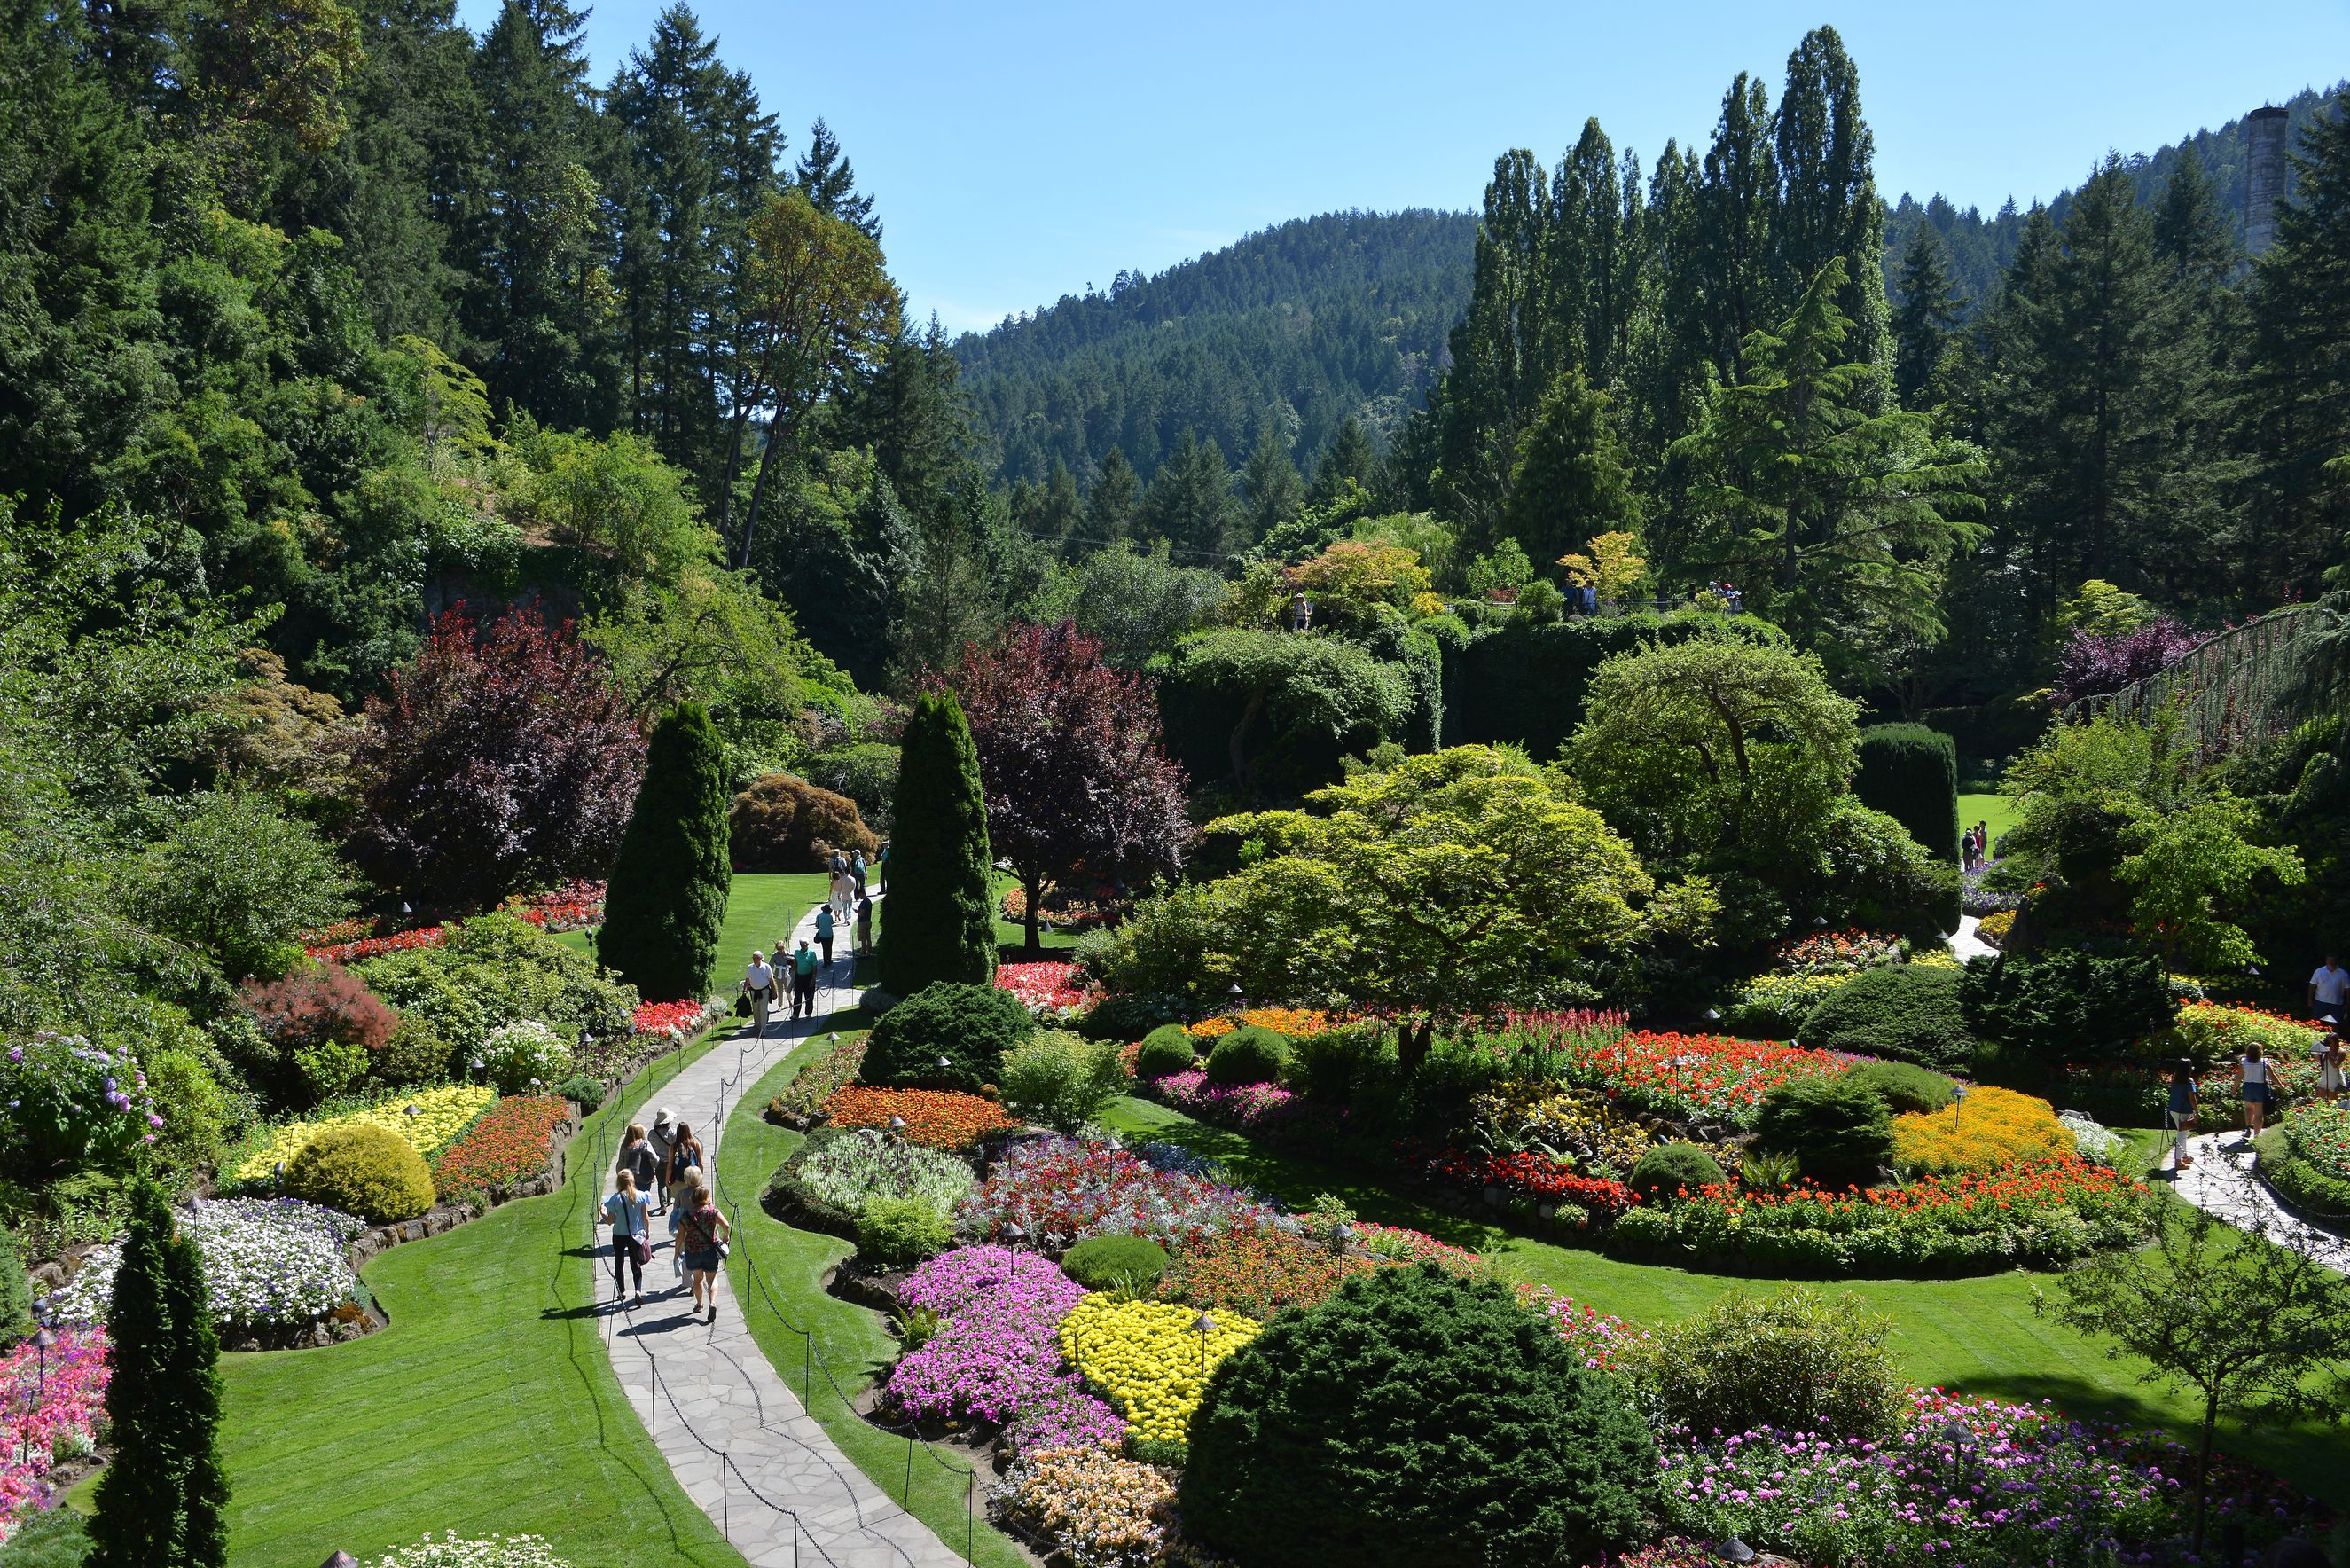 The Butchart Gardens is one of the top tourist attractions